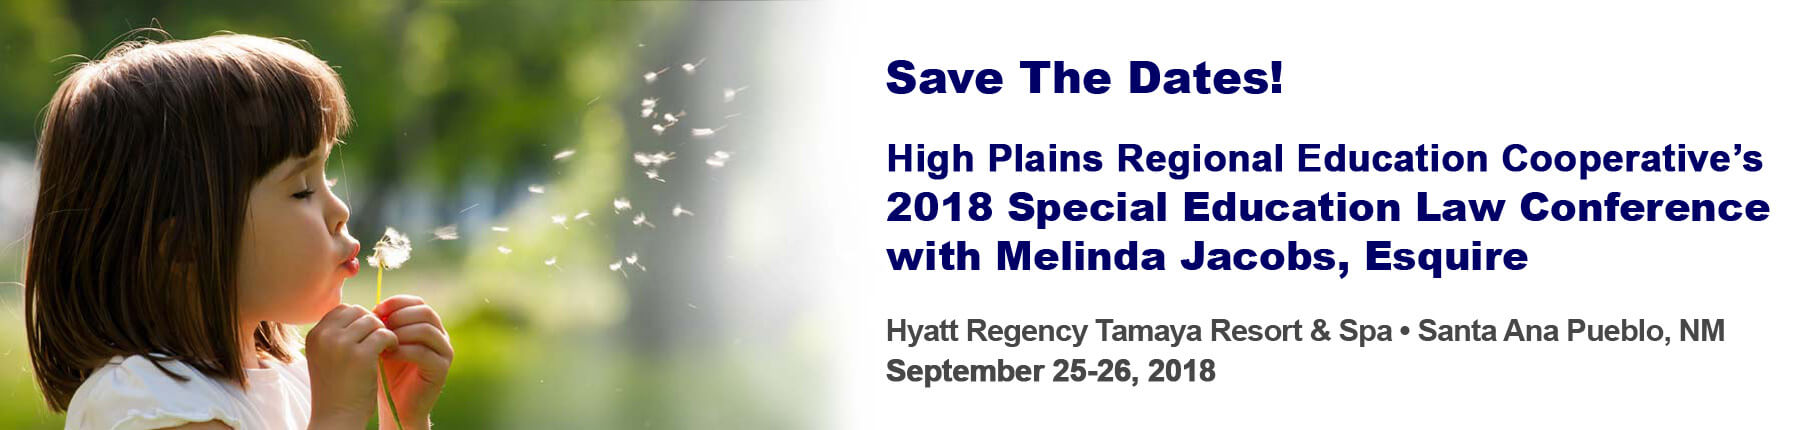 Save the dates! High Plains Regional Education Cooperative 2018 Special Education Law Conference with Melinda Jacobs, Esquire. Hyatt Regency Tamaya Resort & Spa. Santa Ana Pueblo, NM. September 25-26, 2018